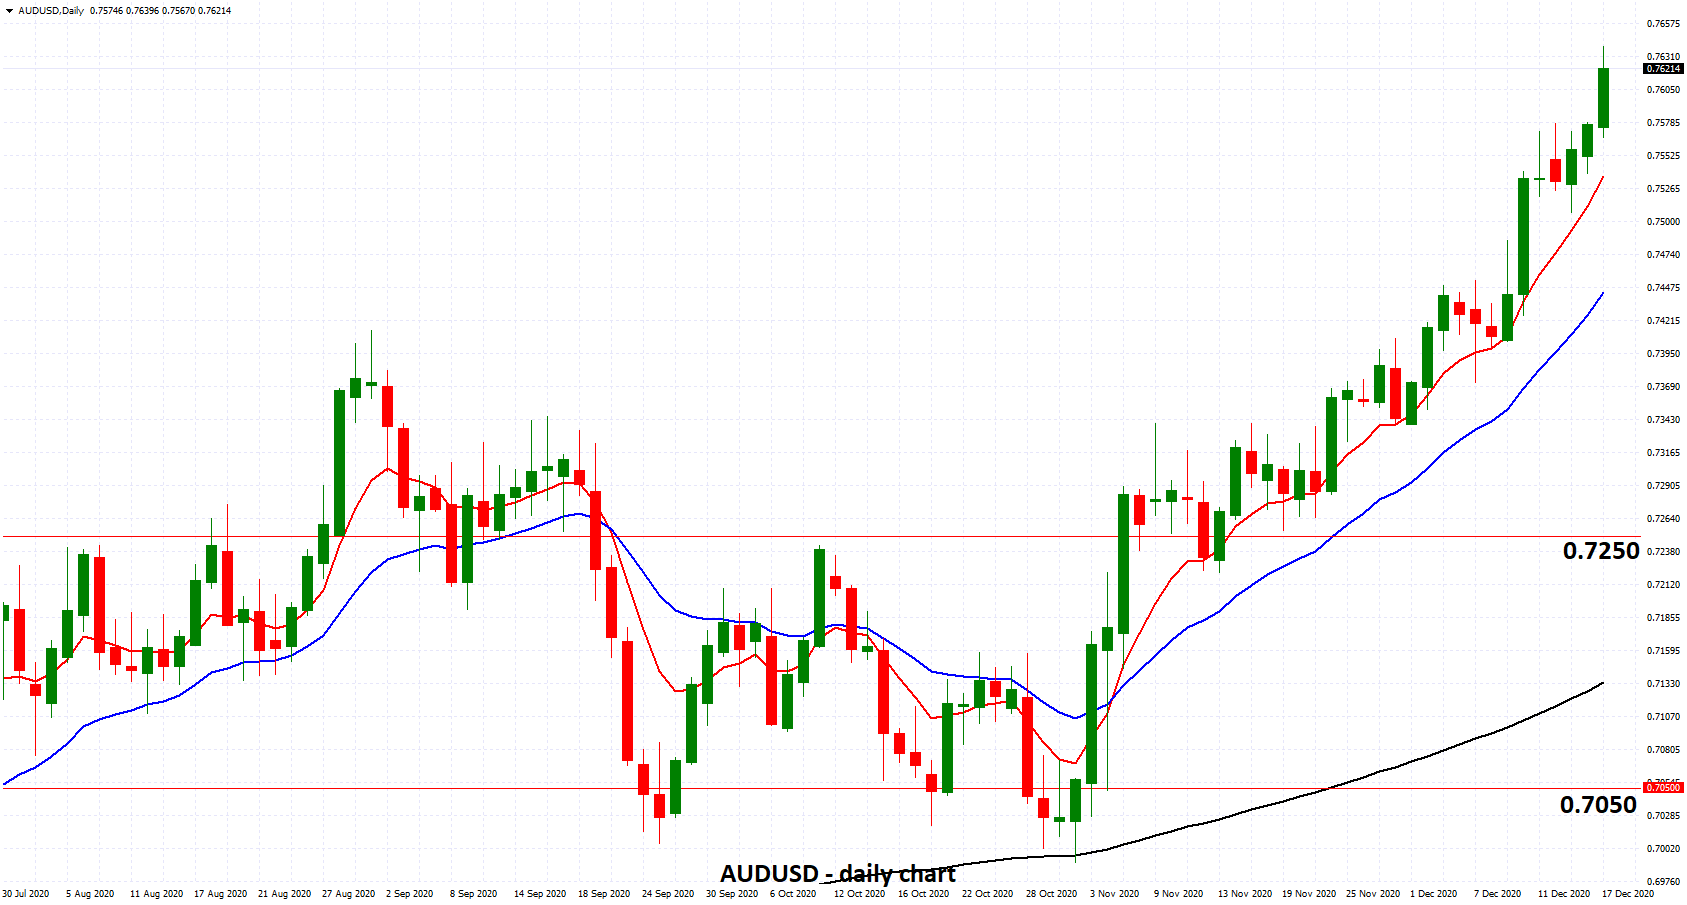 AUDUSD - Surges to Two Year High Above 0.76 as Australias Unemployment Drops